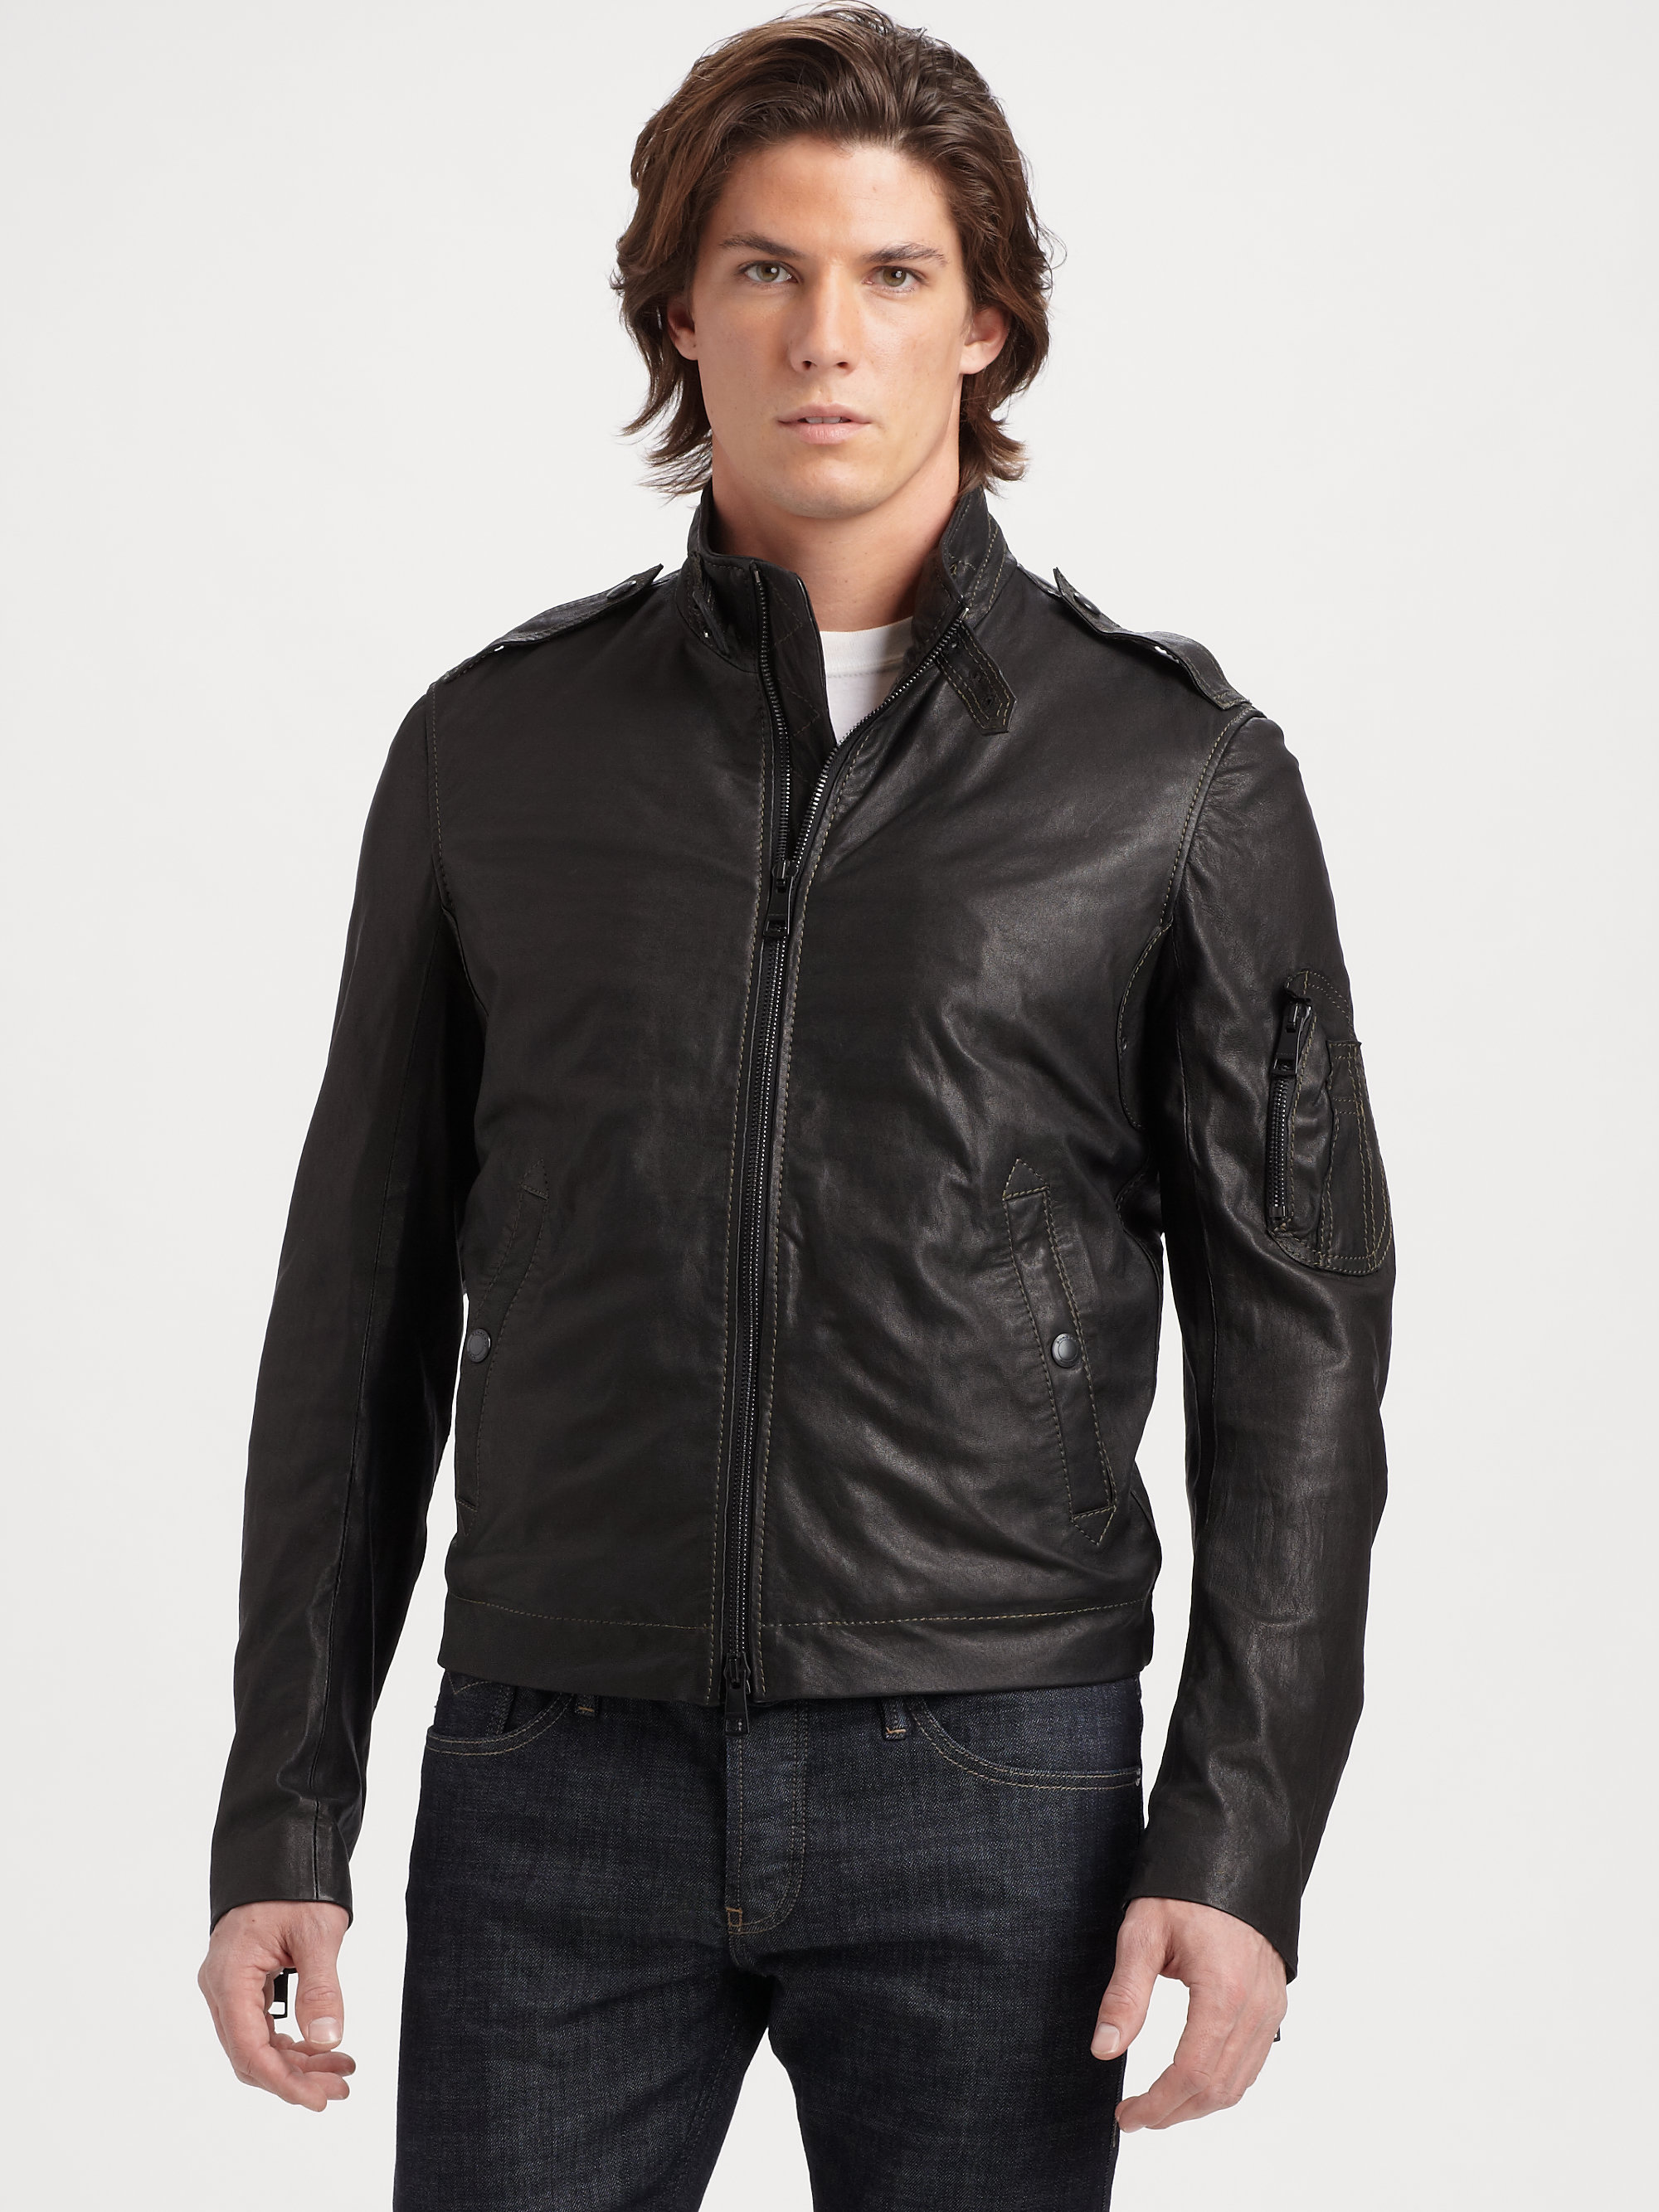 Lyst - Burberry Brit Leather Jacket in Black for Men